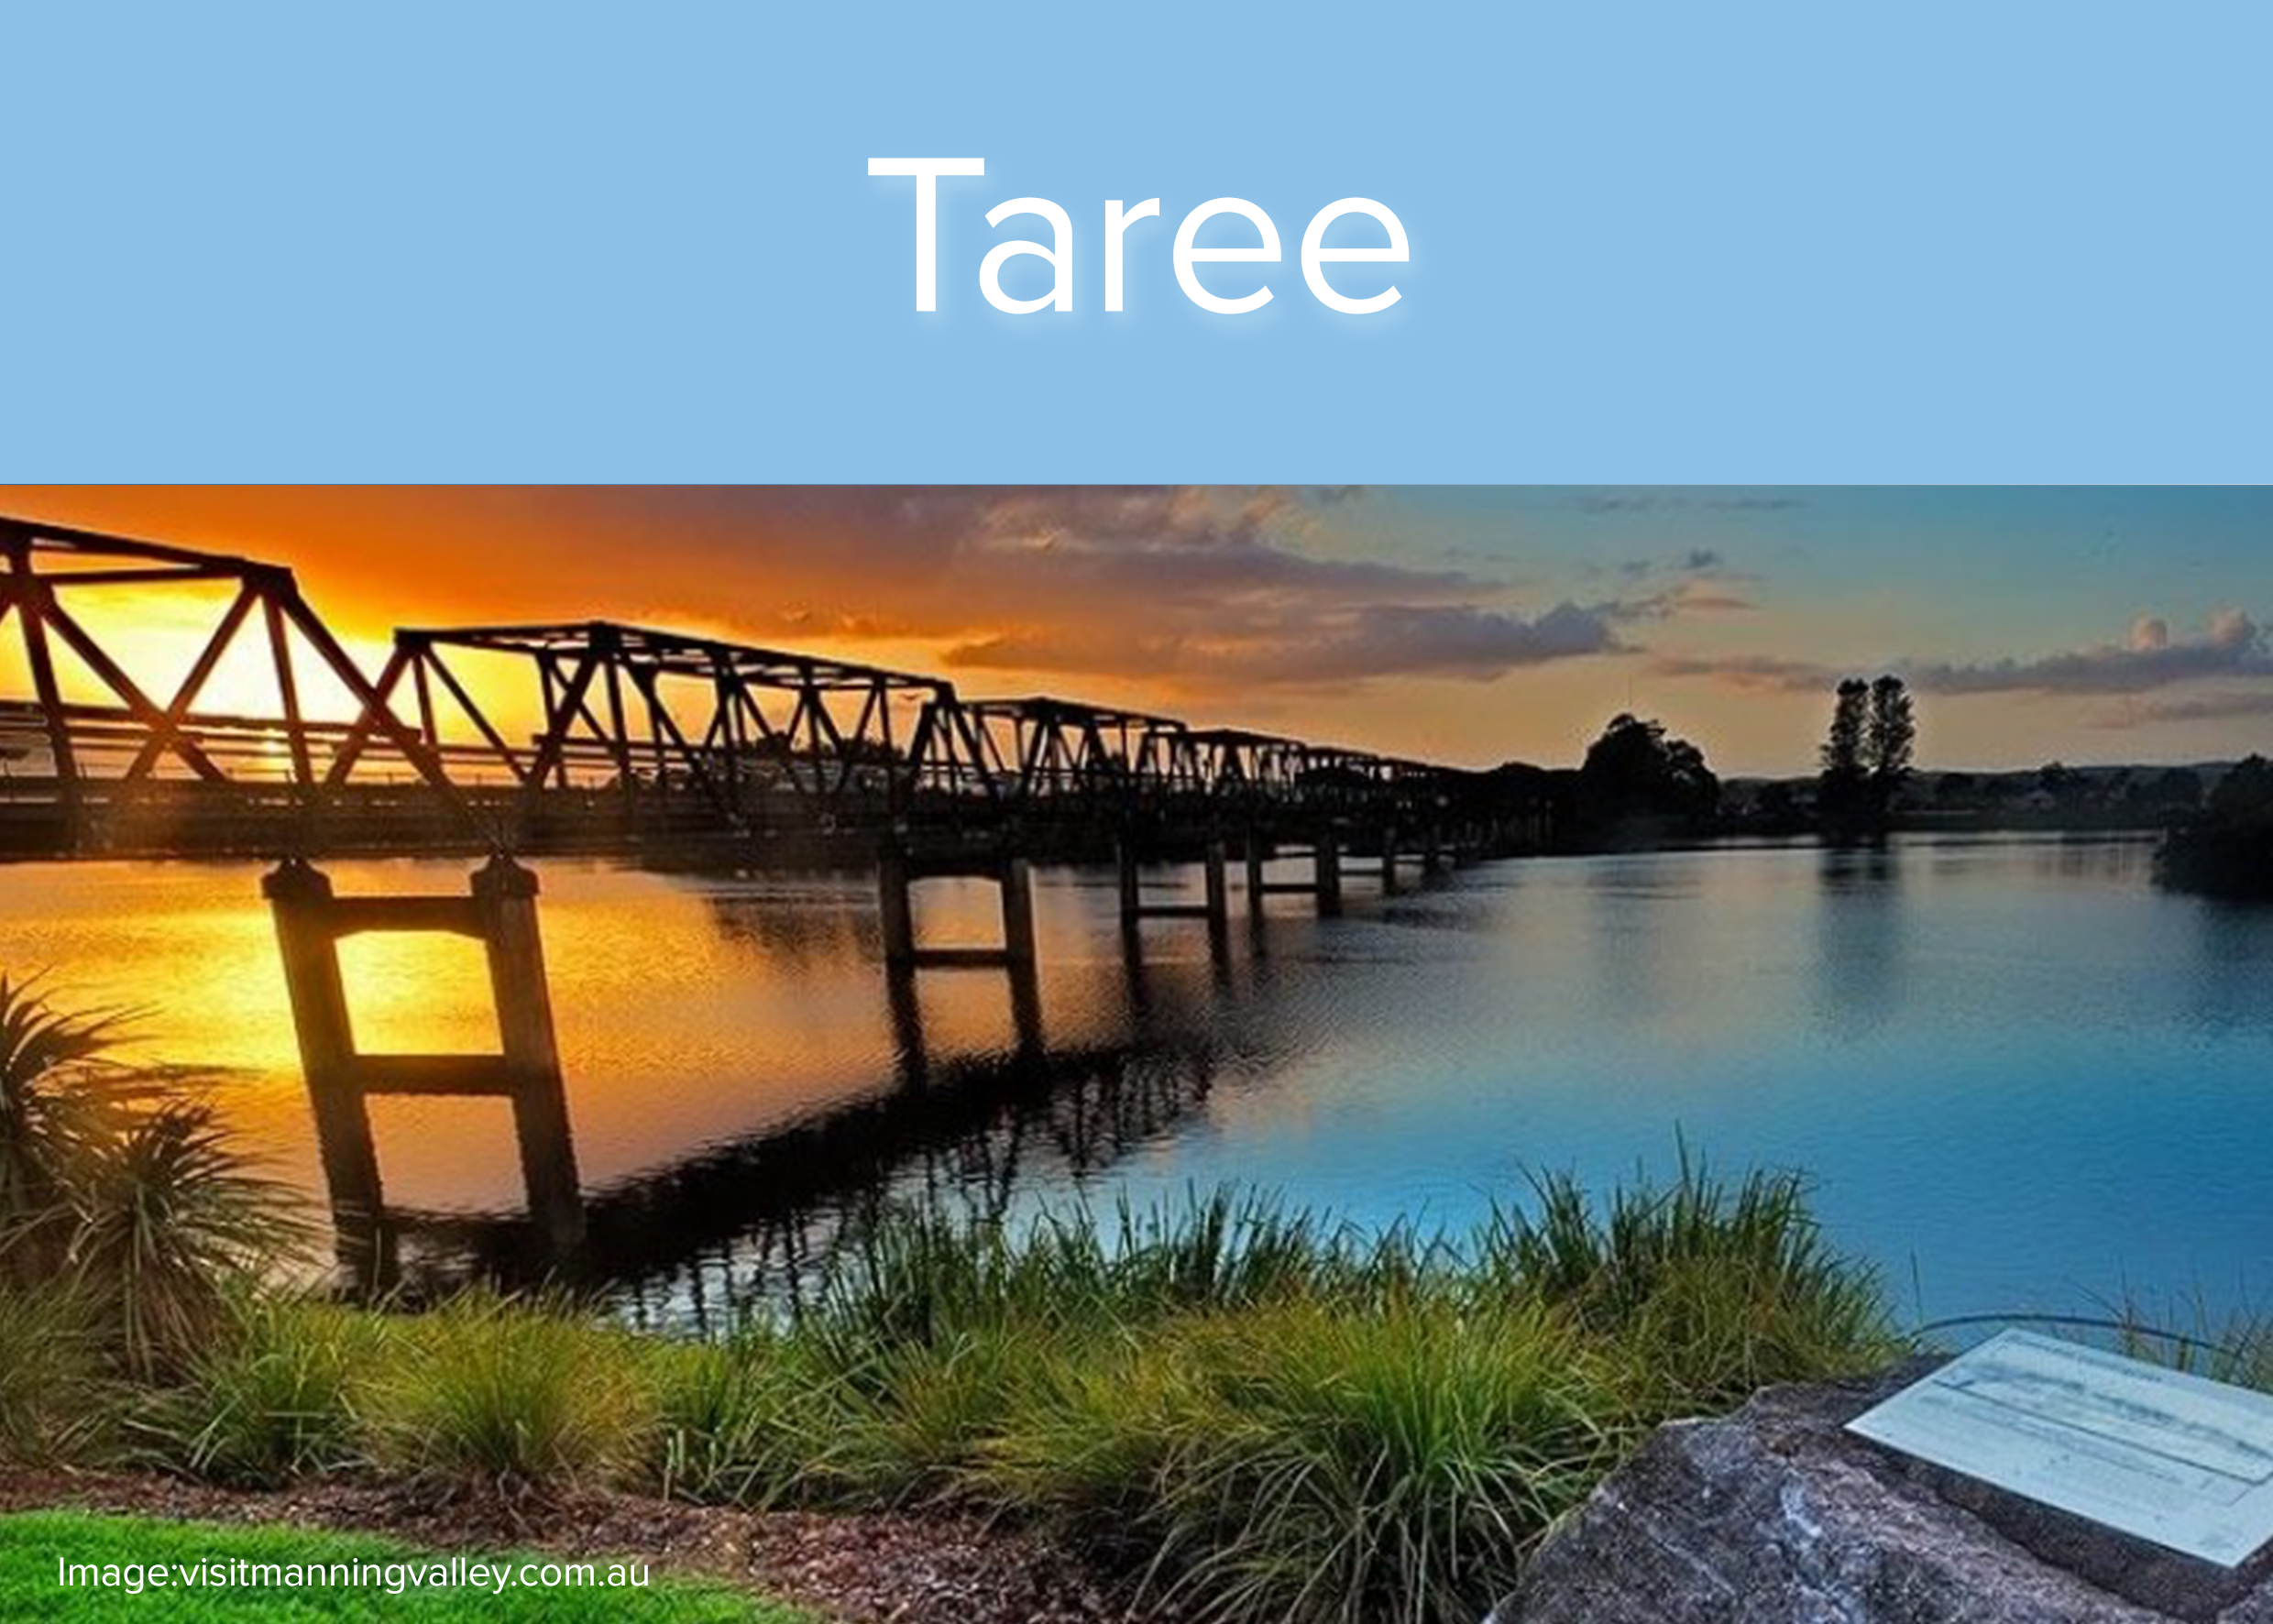 taree-square.jpg